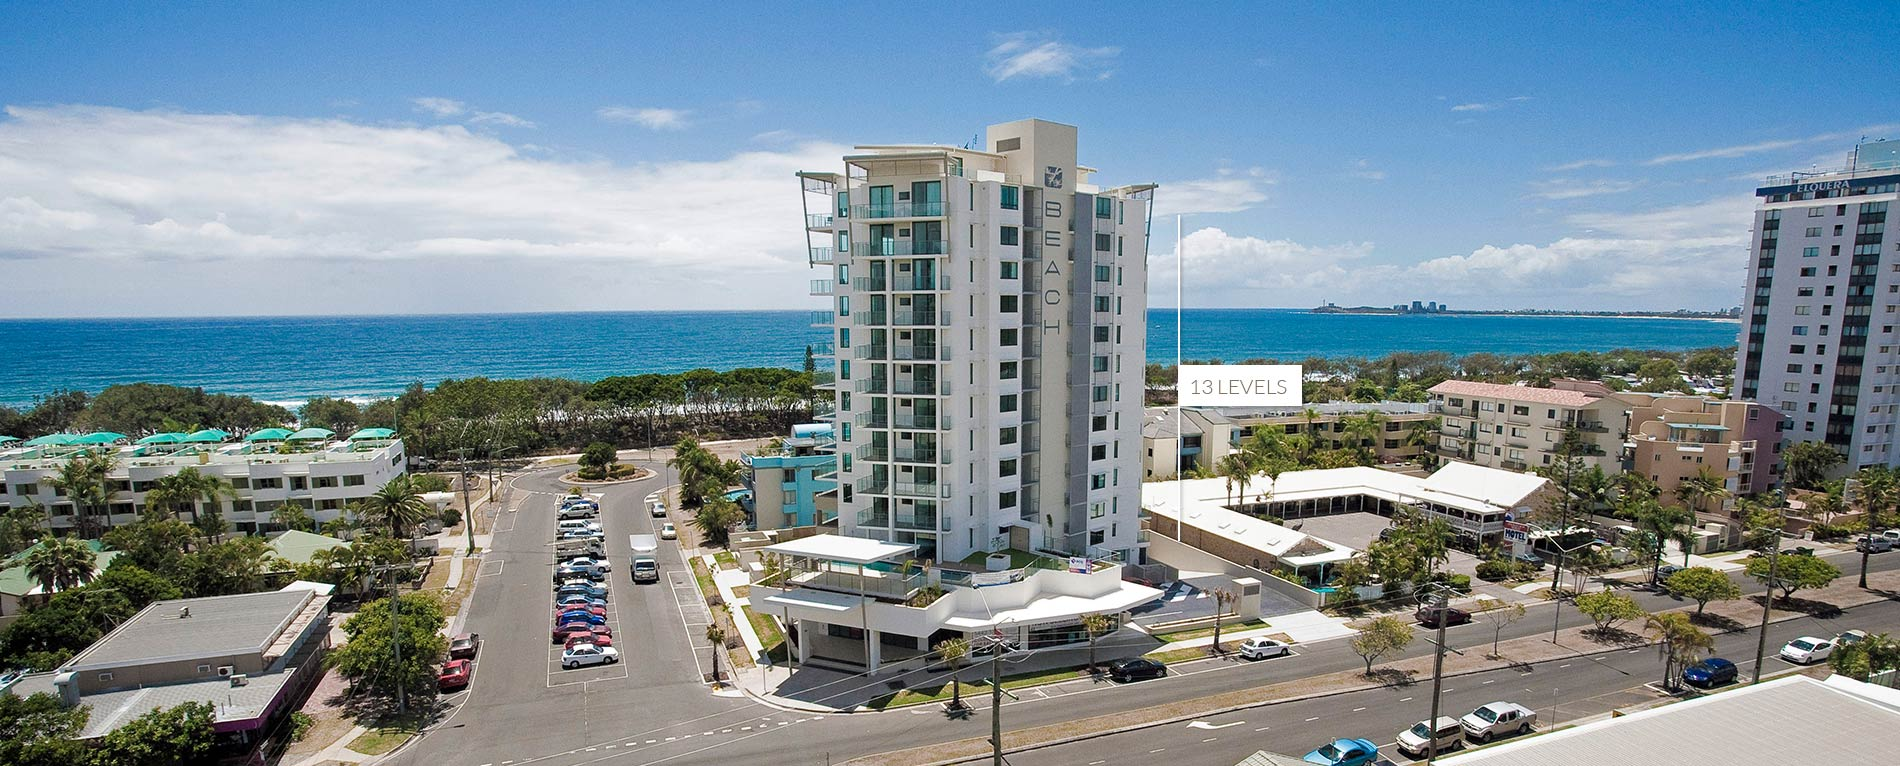 beach-accommodation-maroochydore